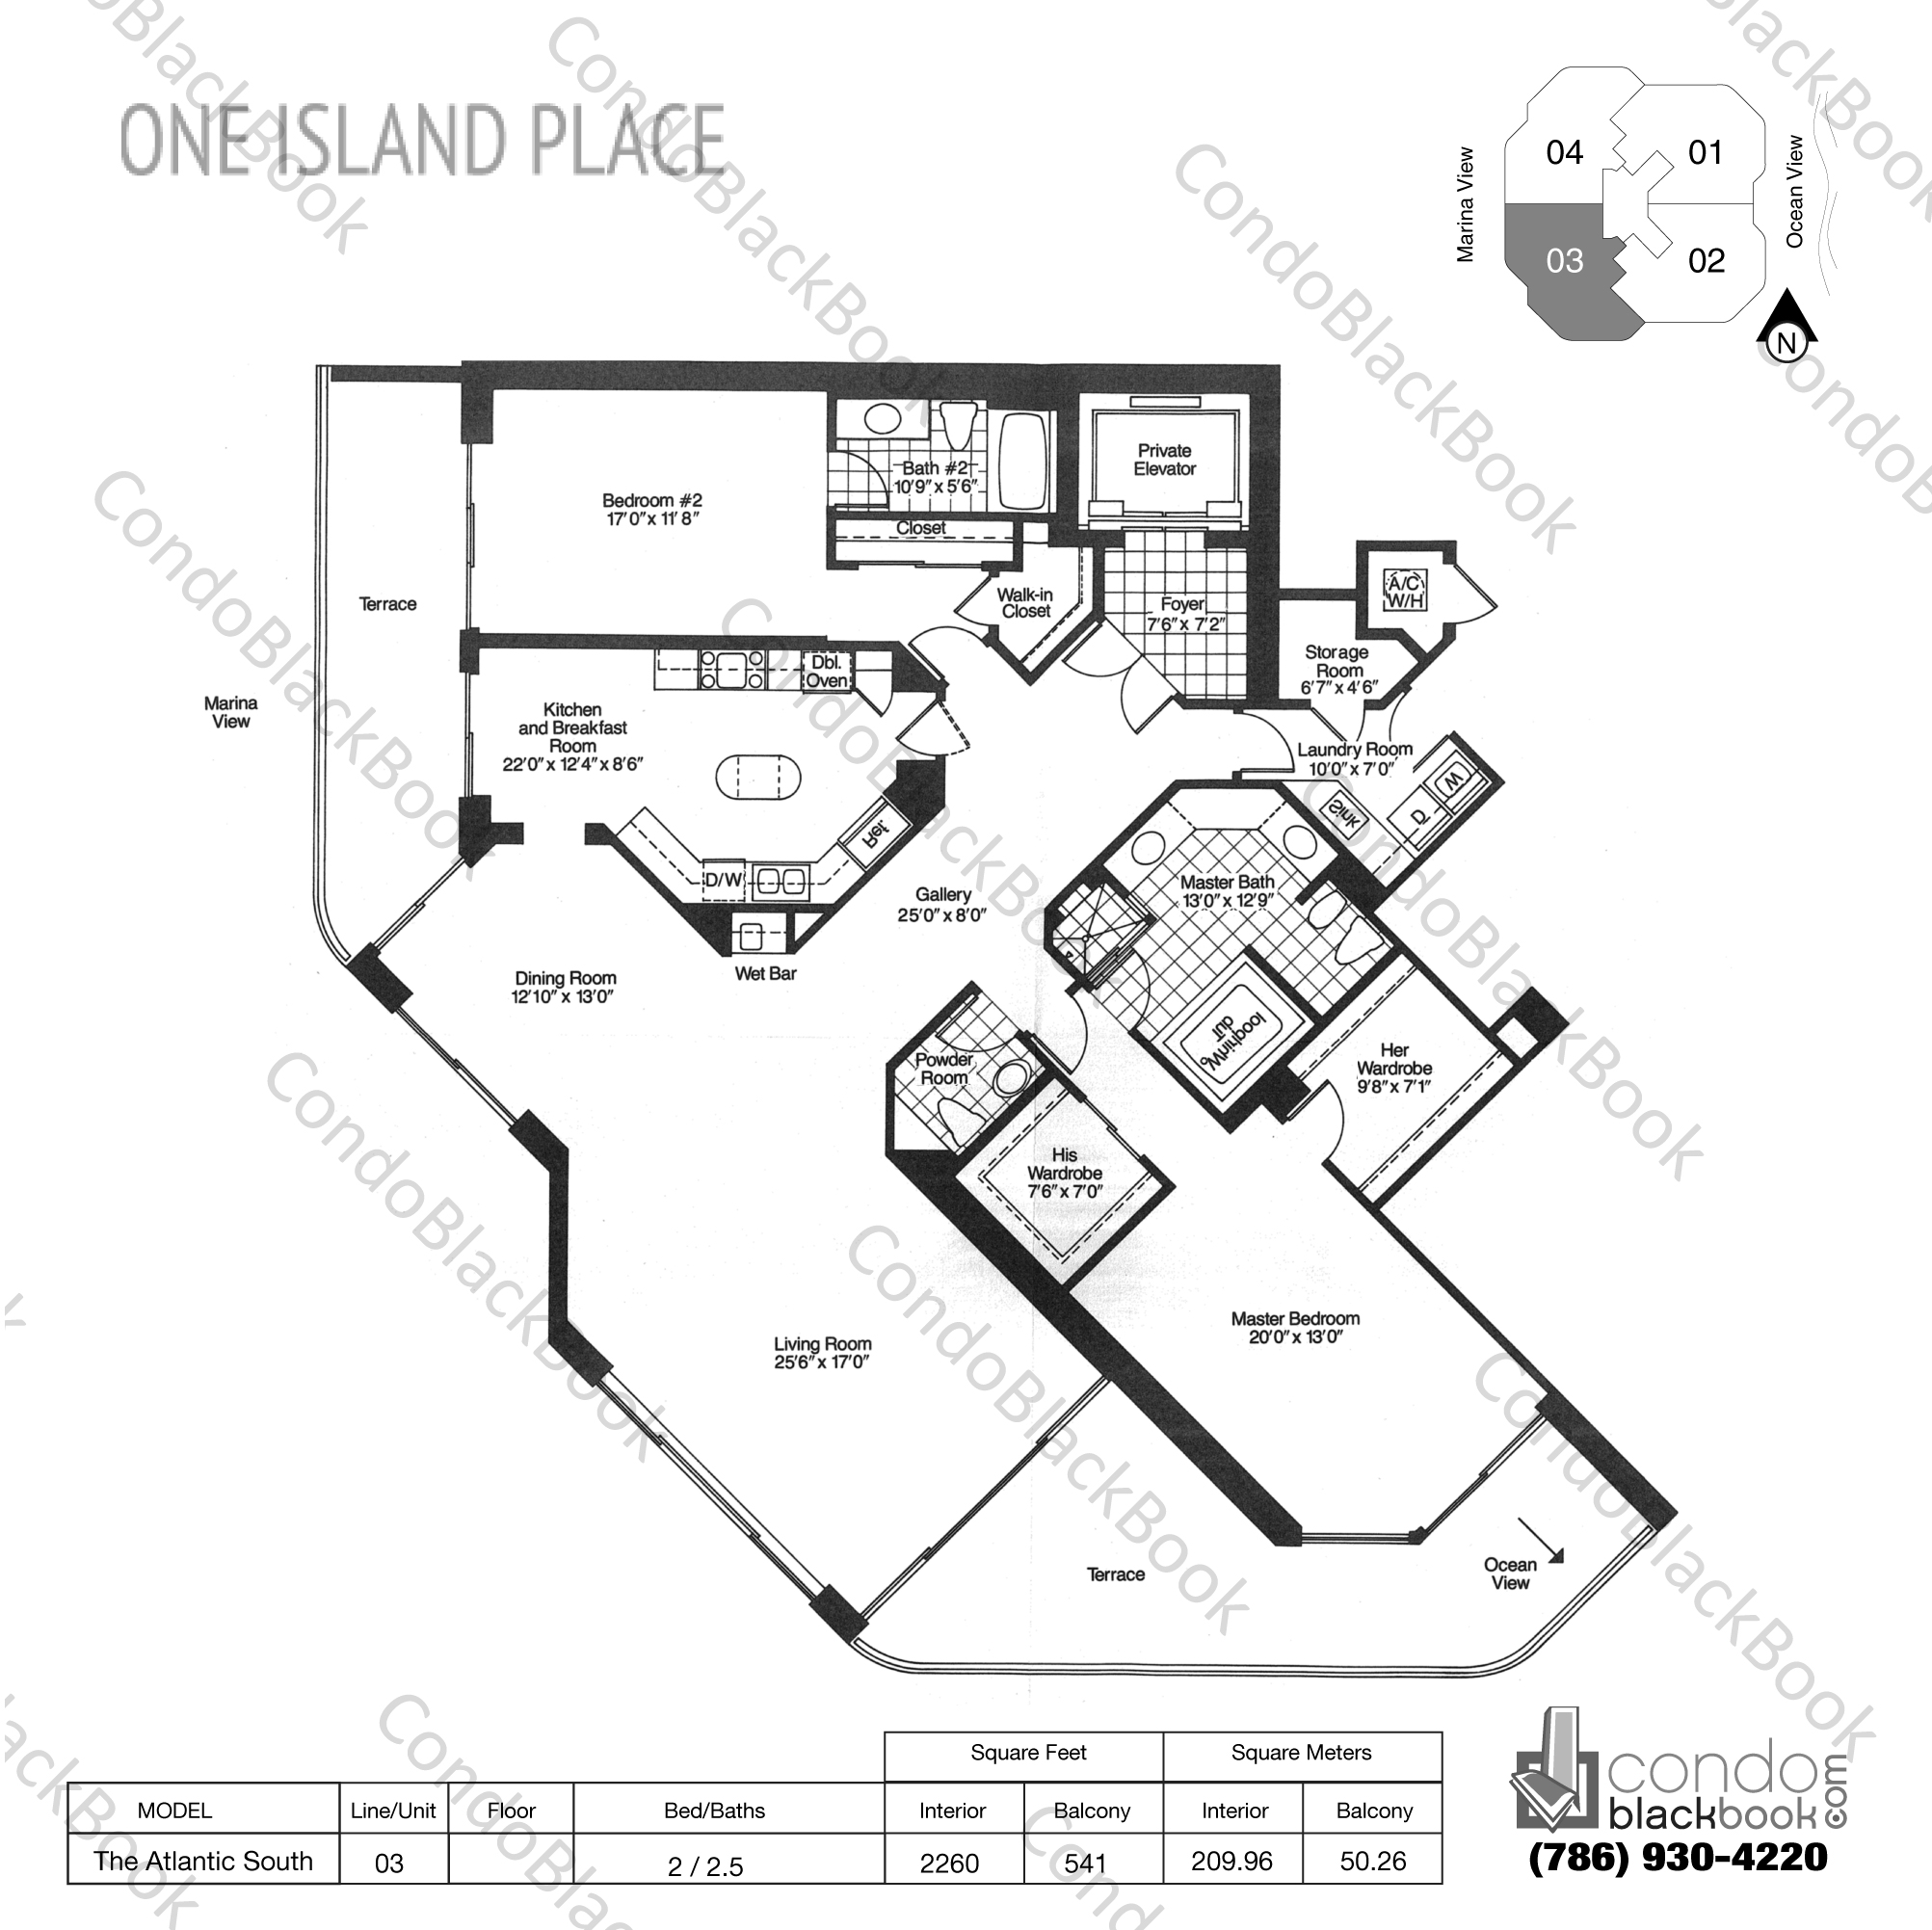 Floor plan for One Island Place Aventura, model The Atlantic South, line 03, 2 / 2.5 bedrooms, 2260 sq ft